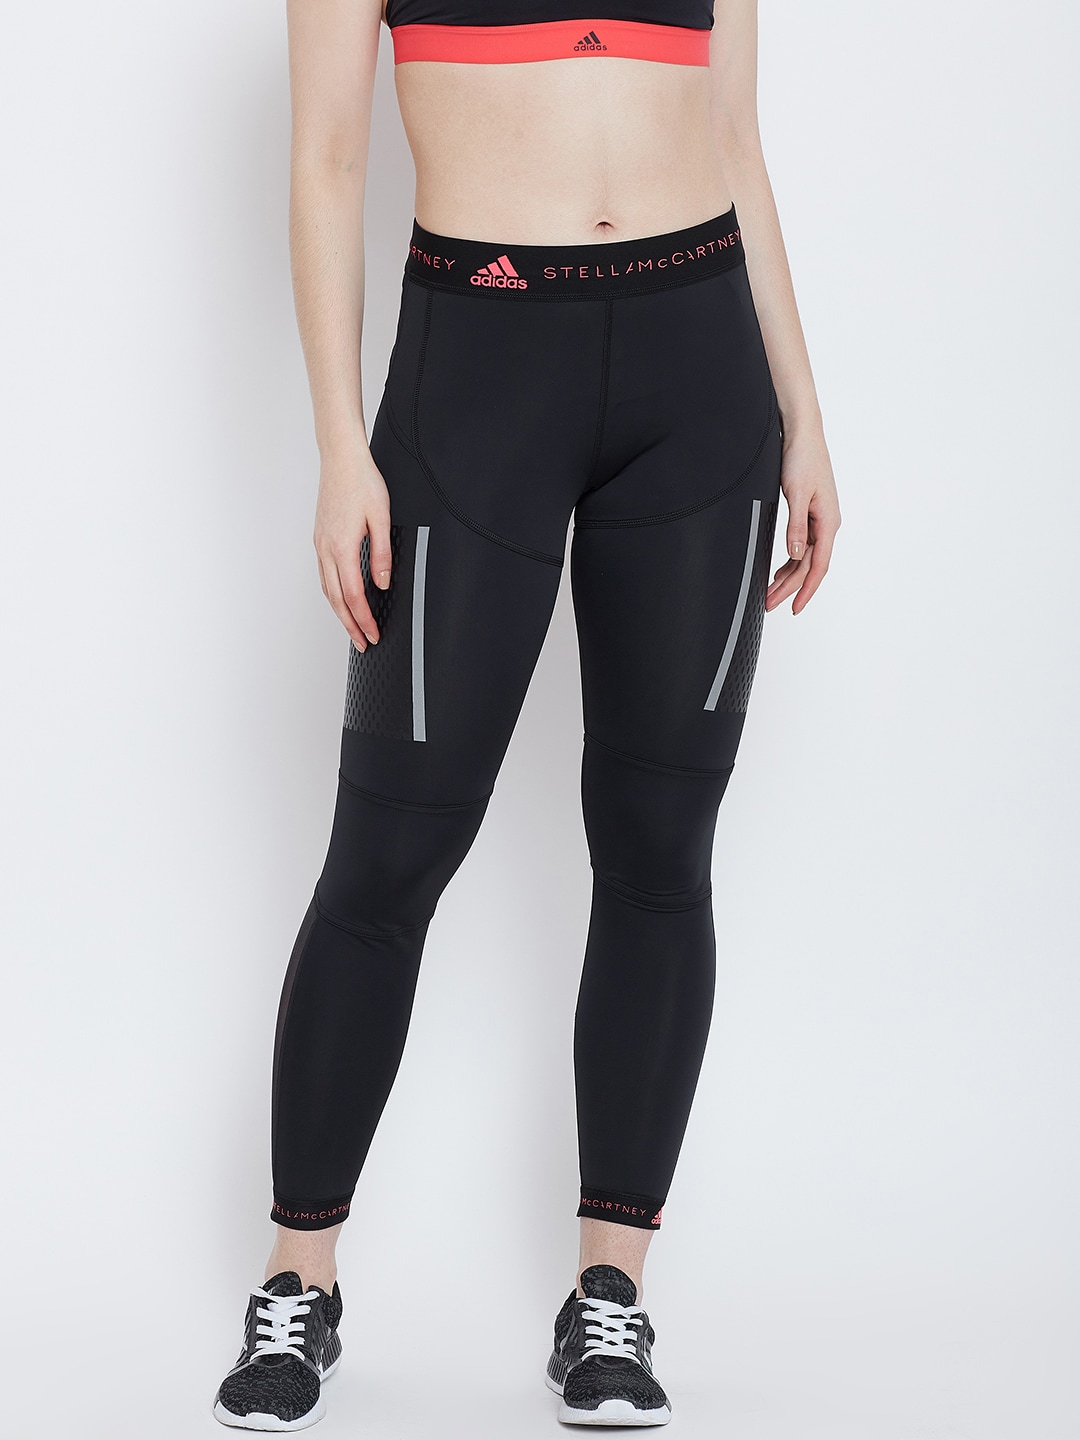 uk availability af577 4ef3a Adidas Bat Tights Caps Leggings - Buy Adidas Bat Tights Caps Leggings  online in India